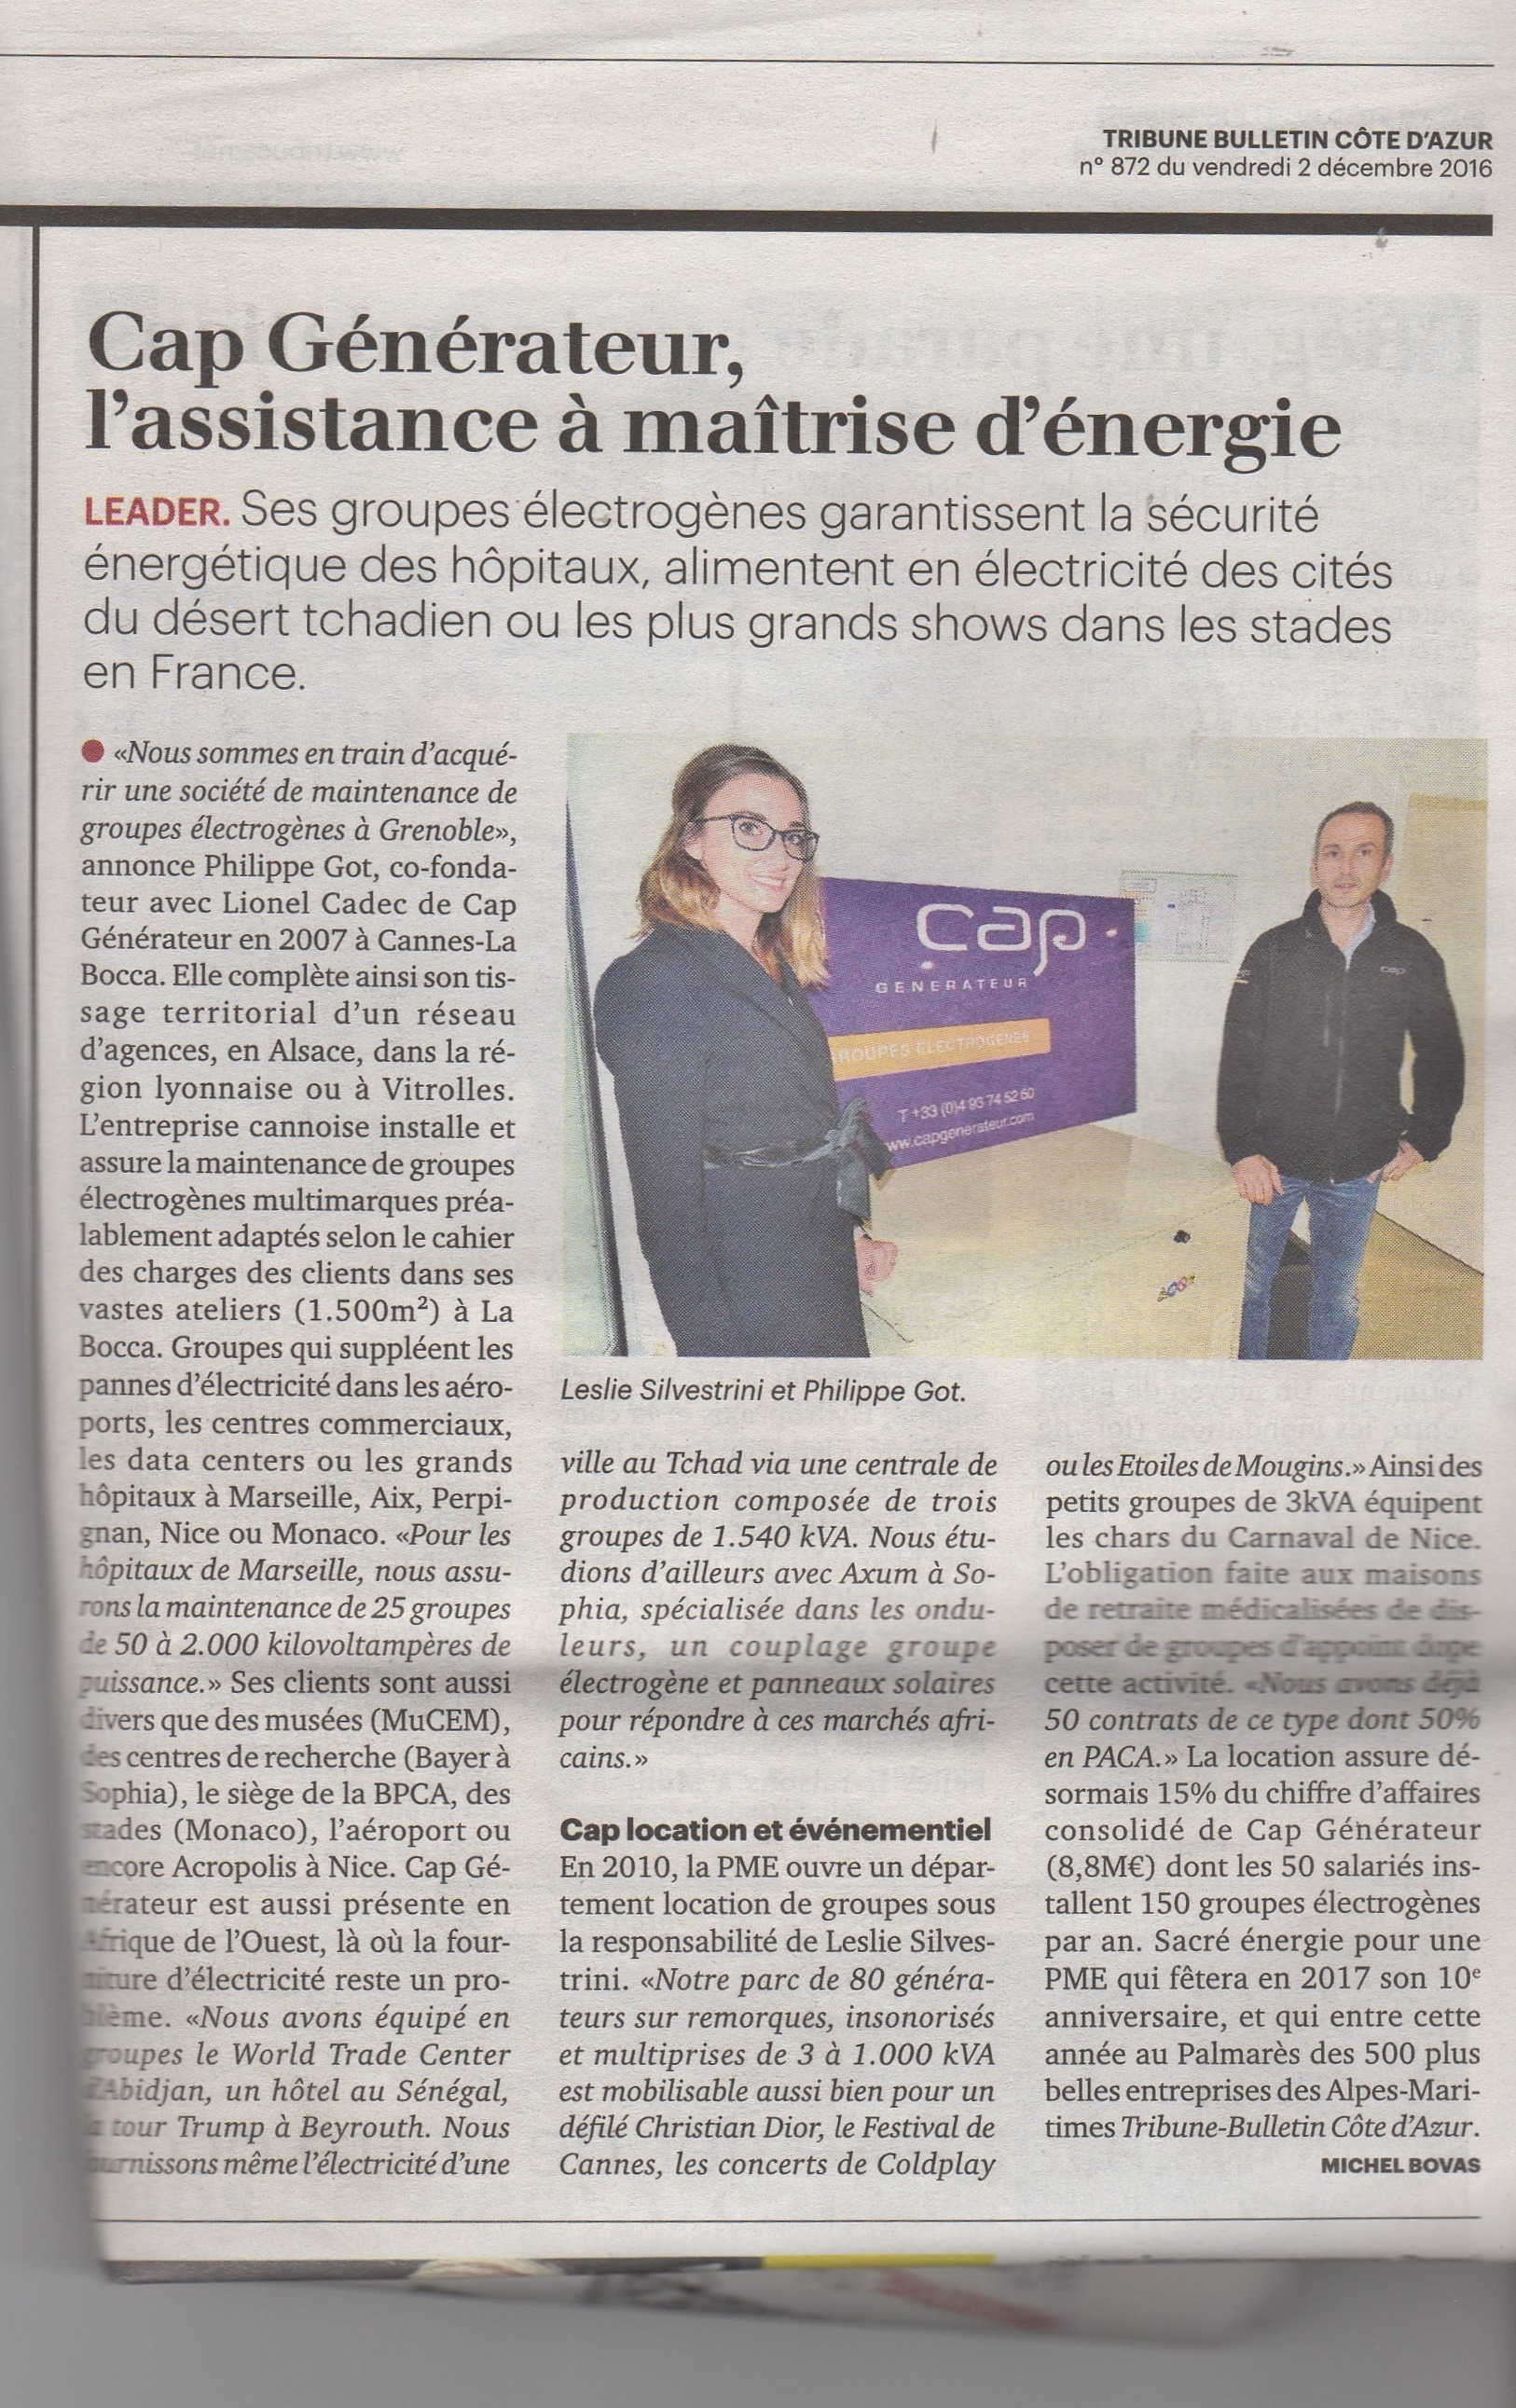 article-la-tribune-cote-azur-parution-le-02-dec-2016-1